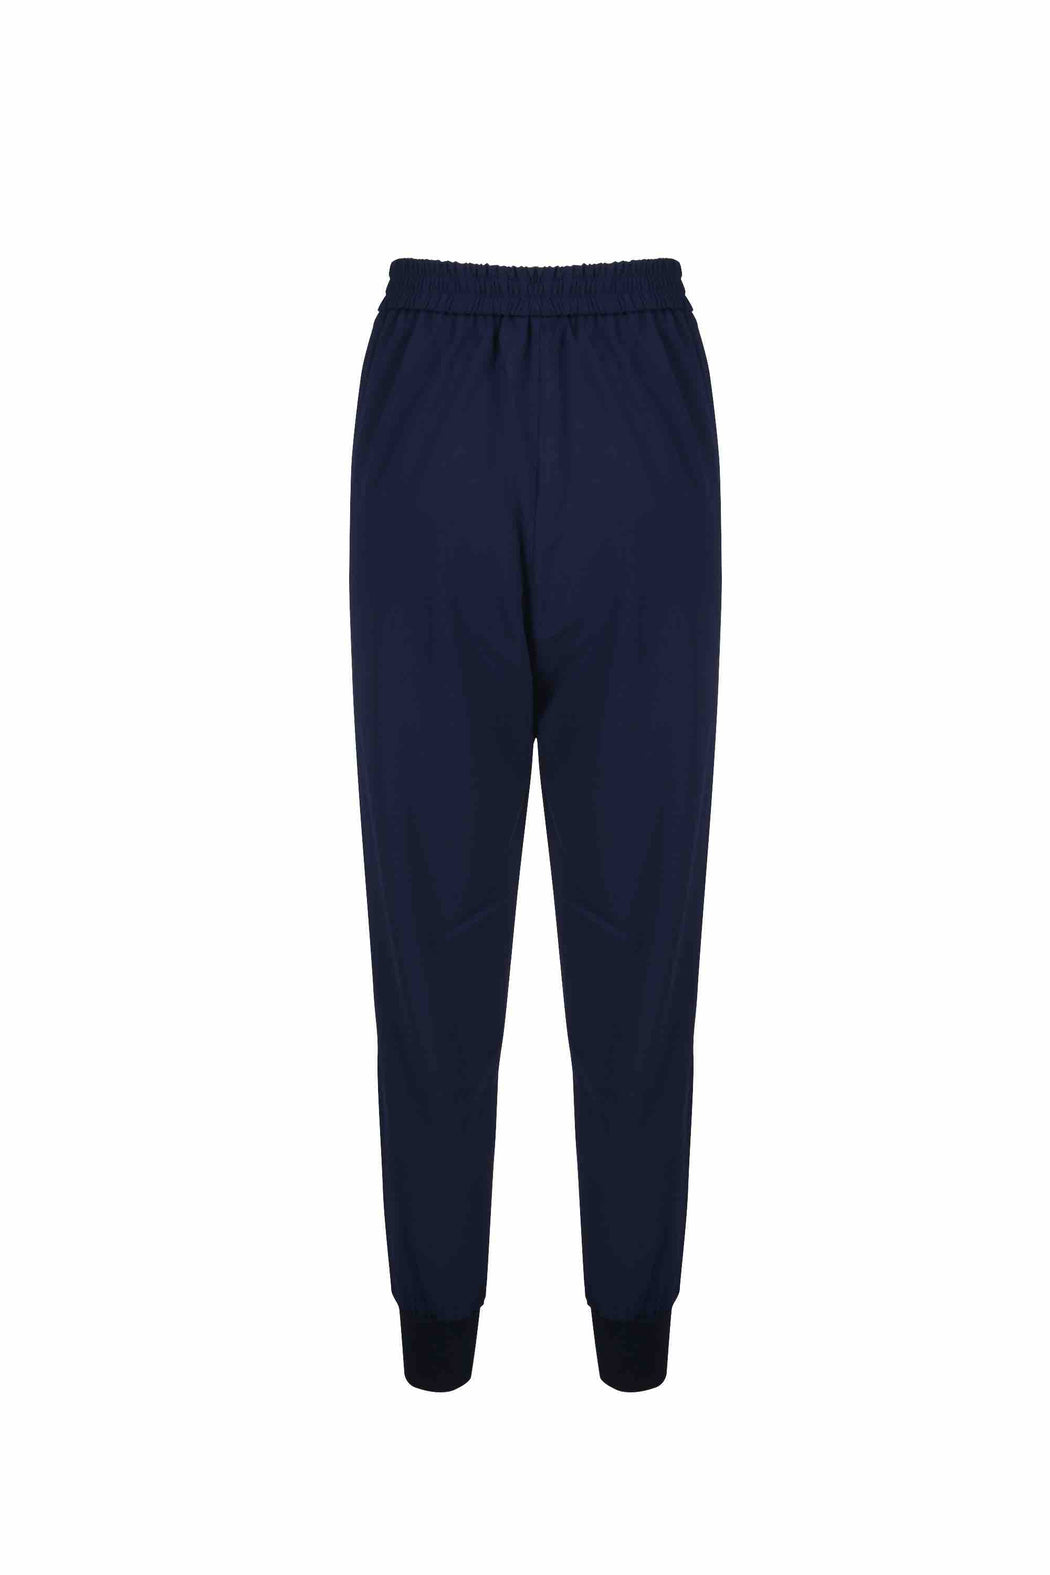 Back view of Women Crepe Rib Knit Pants in Navy